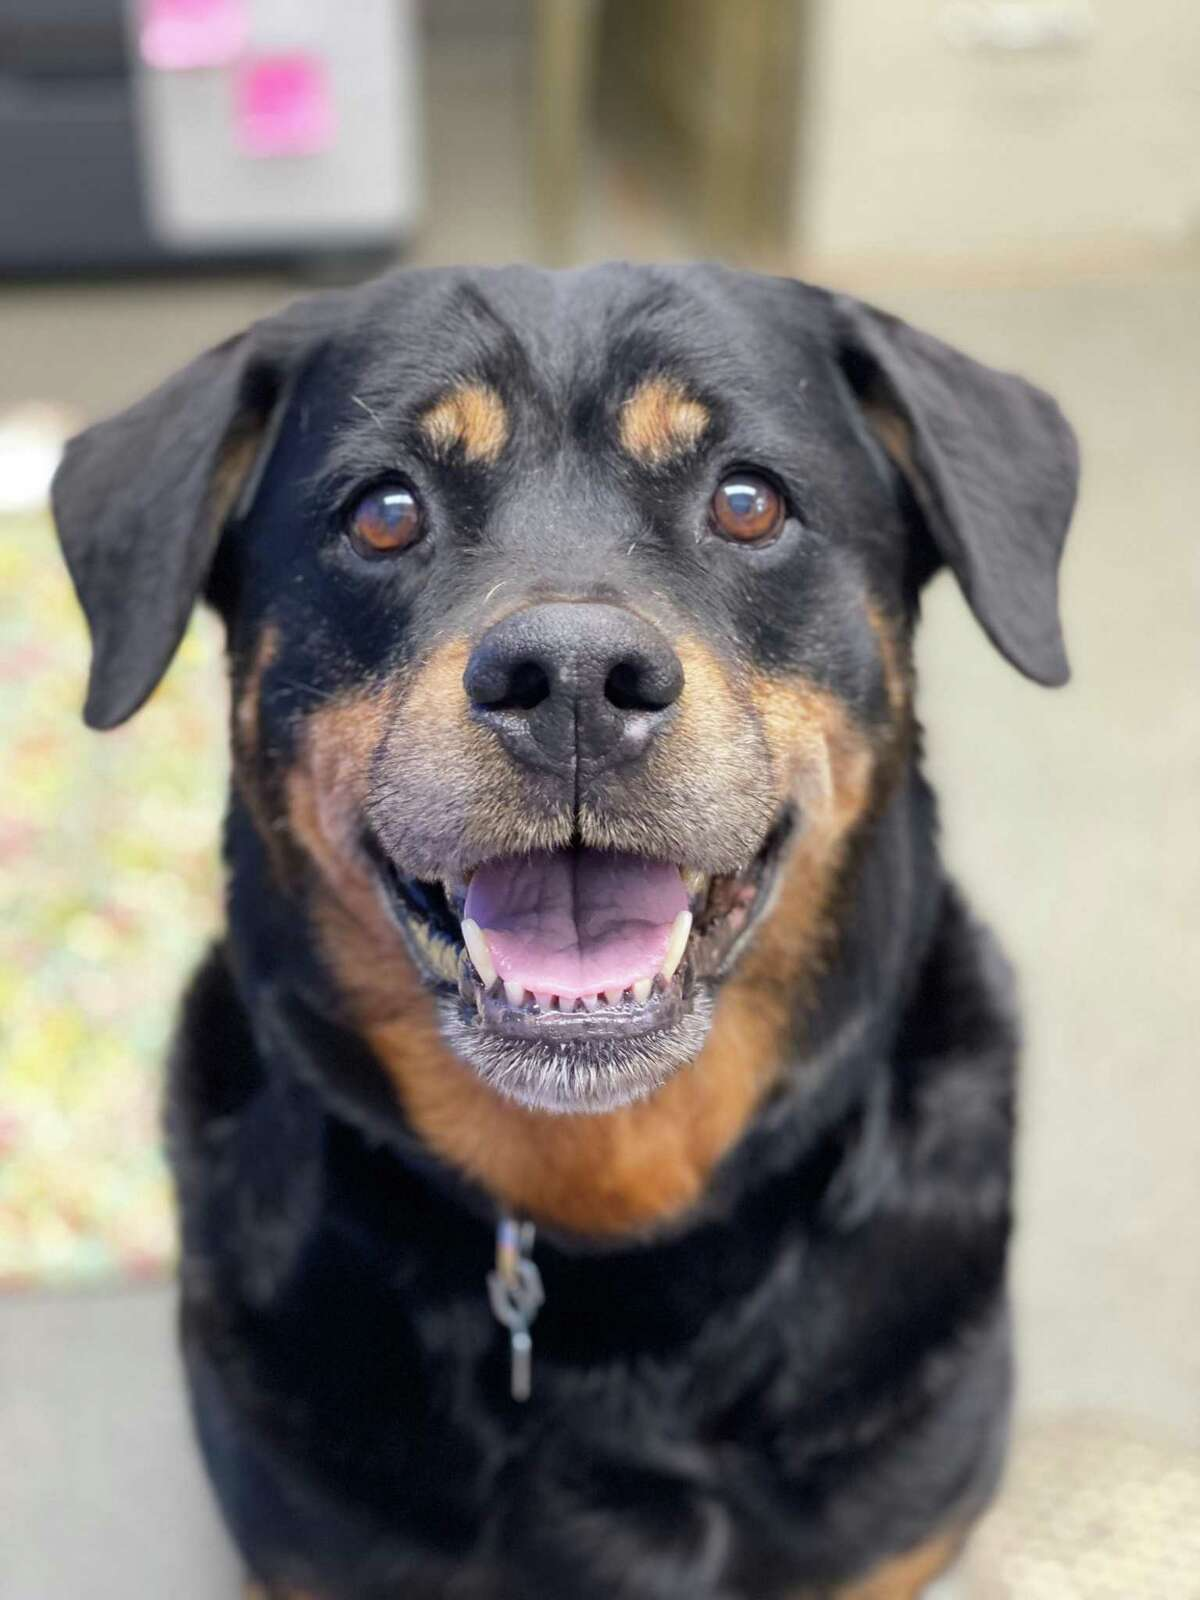 Jasmine is an 8-year-old Rottweiler at the Connecticut Humane Society who is looking for a new home where she can relax and nap next to you and get in a nice stroll outside each day. She's very mellow but does let you know when she wants to be pet by bumping her head into your hand or lap. Her favorite thing to do on walks is sniff anything and everything in the grass. Jas would prefer a home with only a few or no stairs, because she has some arthritis. She'd also like to be your only dog because she loves people so much, but may be open to being buddies with a cat. She's on a special diet to prevent bladder stones (and had some surgically removed in CHS' veterinary department), but she doesn't mind. This happy lady just wants people to love and to be around all the time. Visit CThumane.org/adopt to learn more. An online application can be found in each pet's profile.